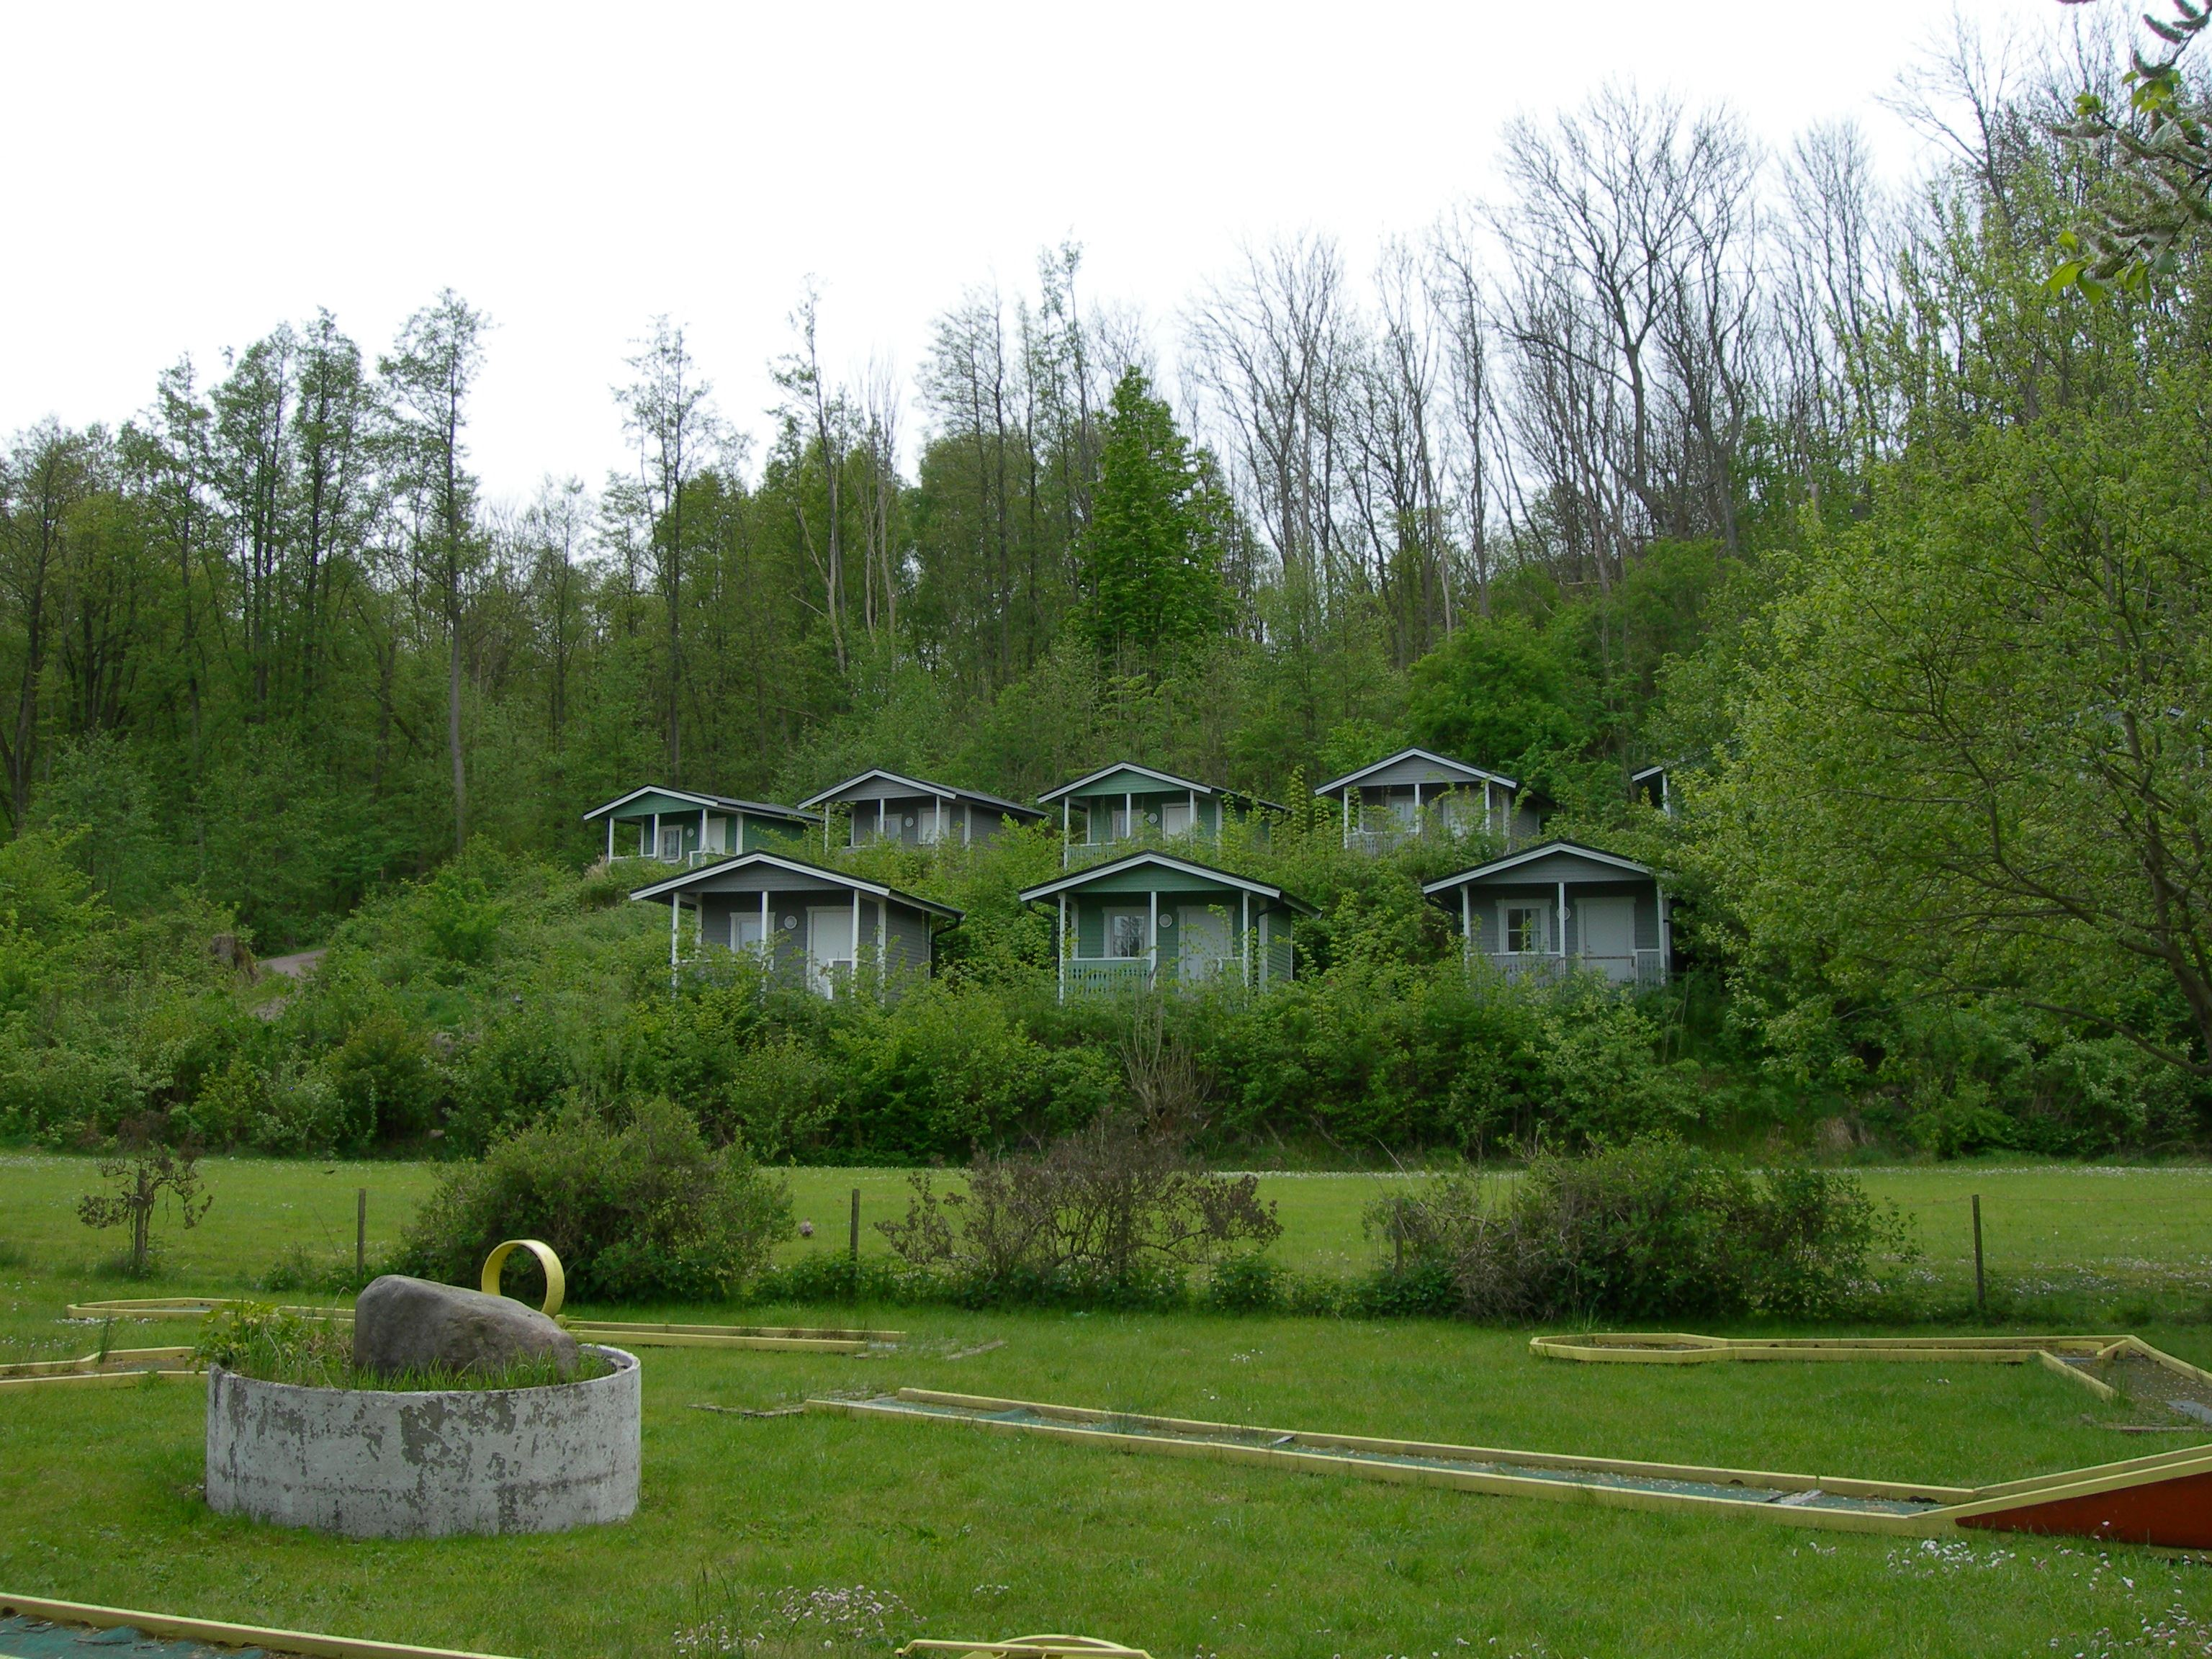 Vens Stugby & Camping